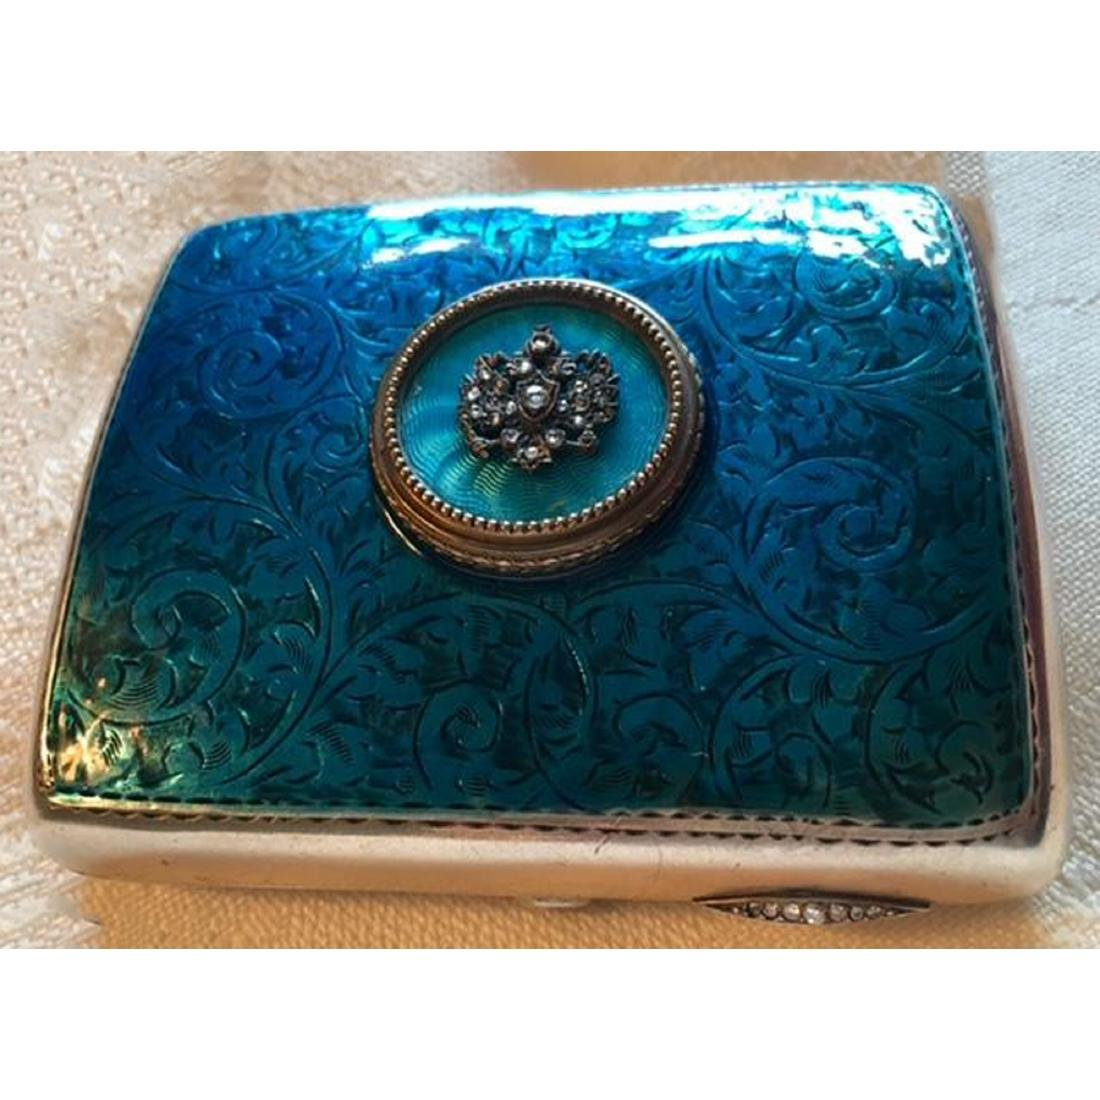 FABERGE RUSSIAN 19thC STERLING ENAMEL GOLD CASE